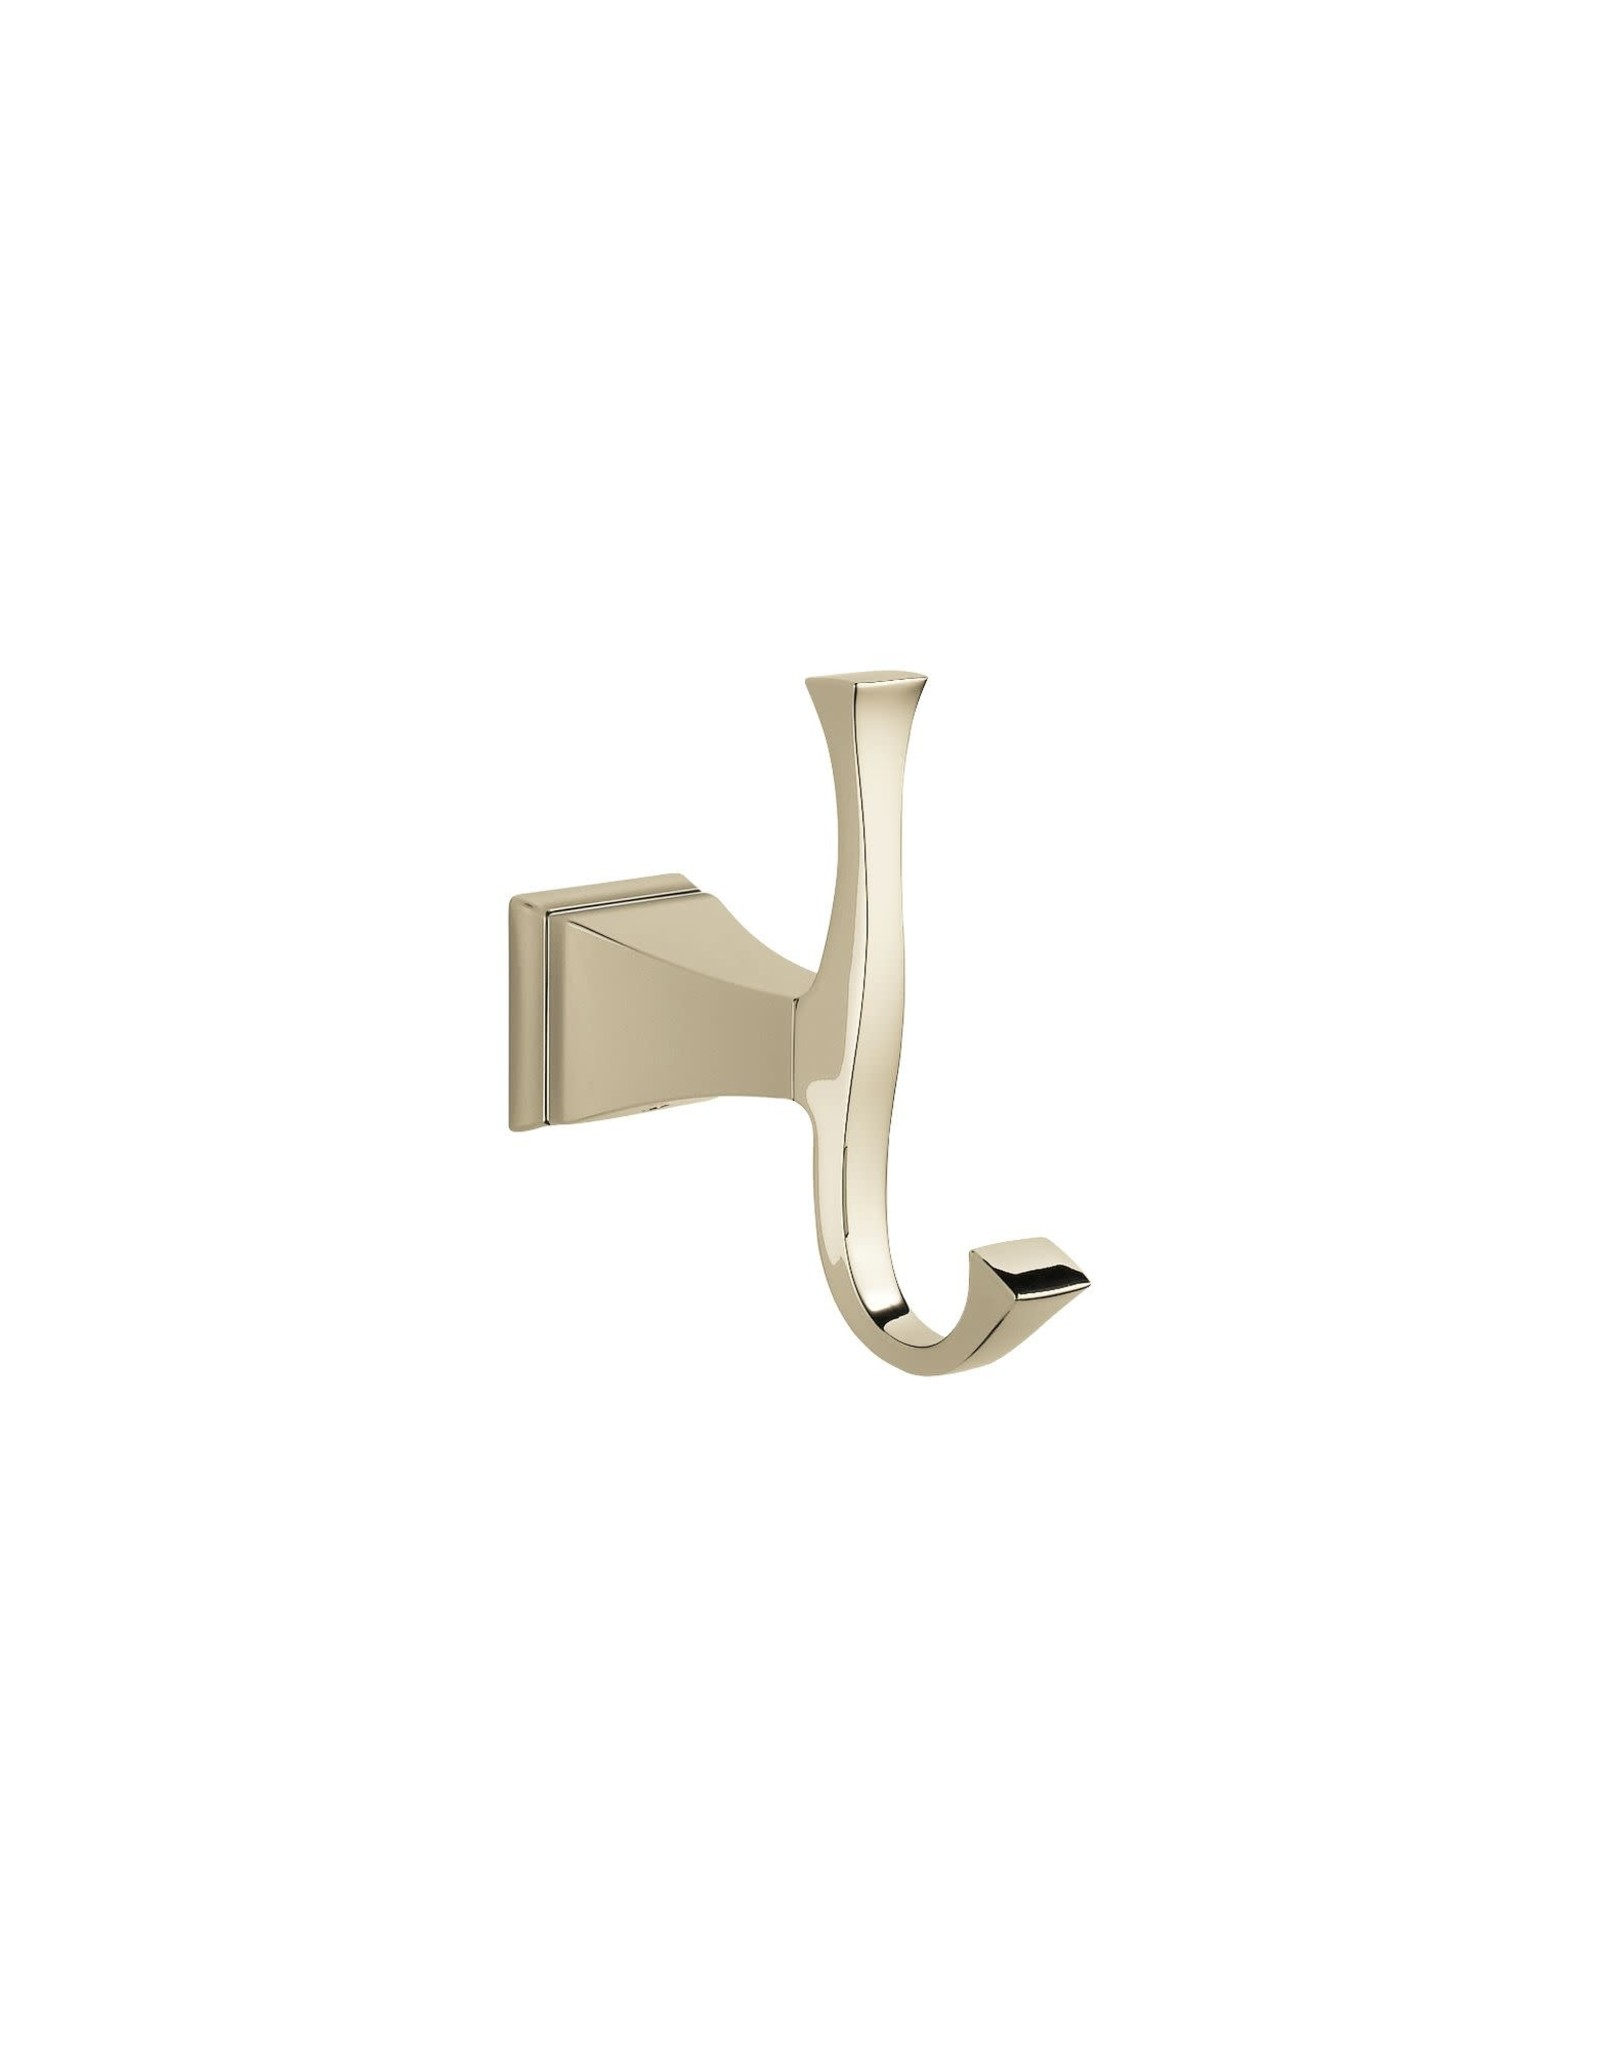 Delta DELTA DRYDEN - POLISHED NICKEL ROBE HOOK